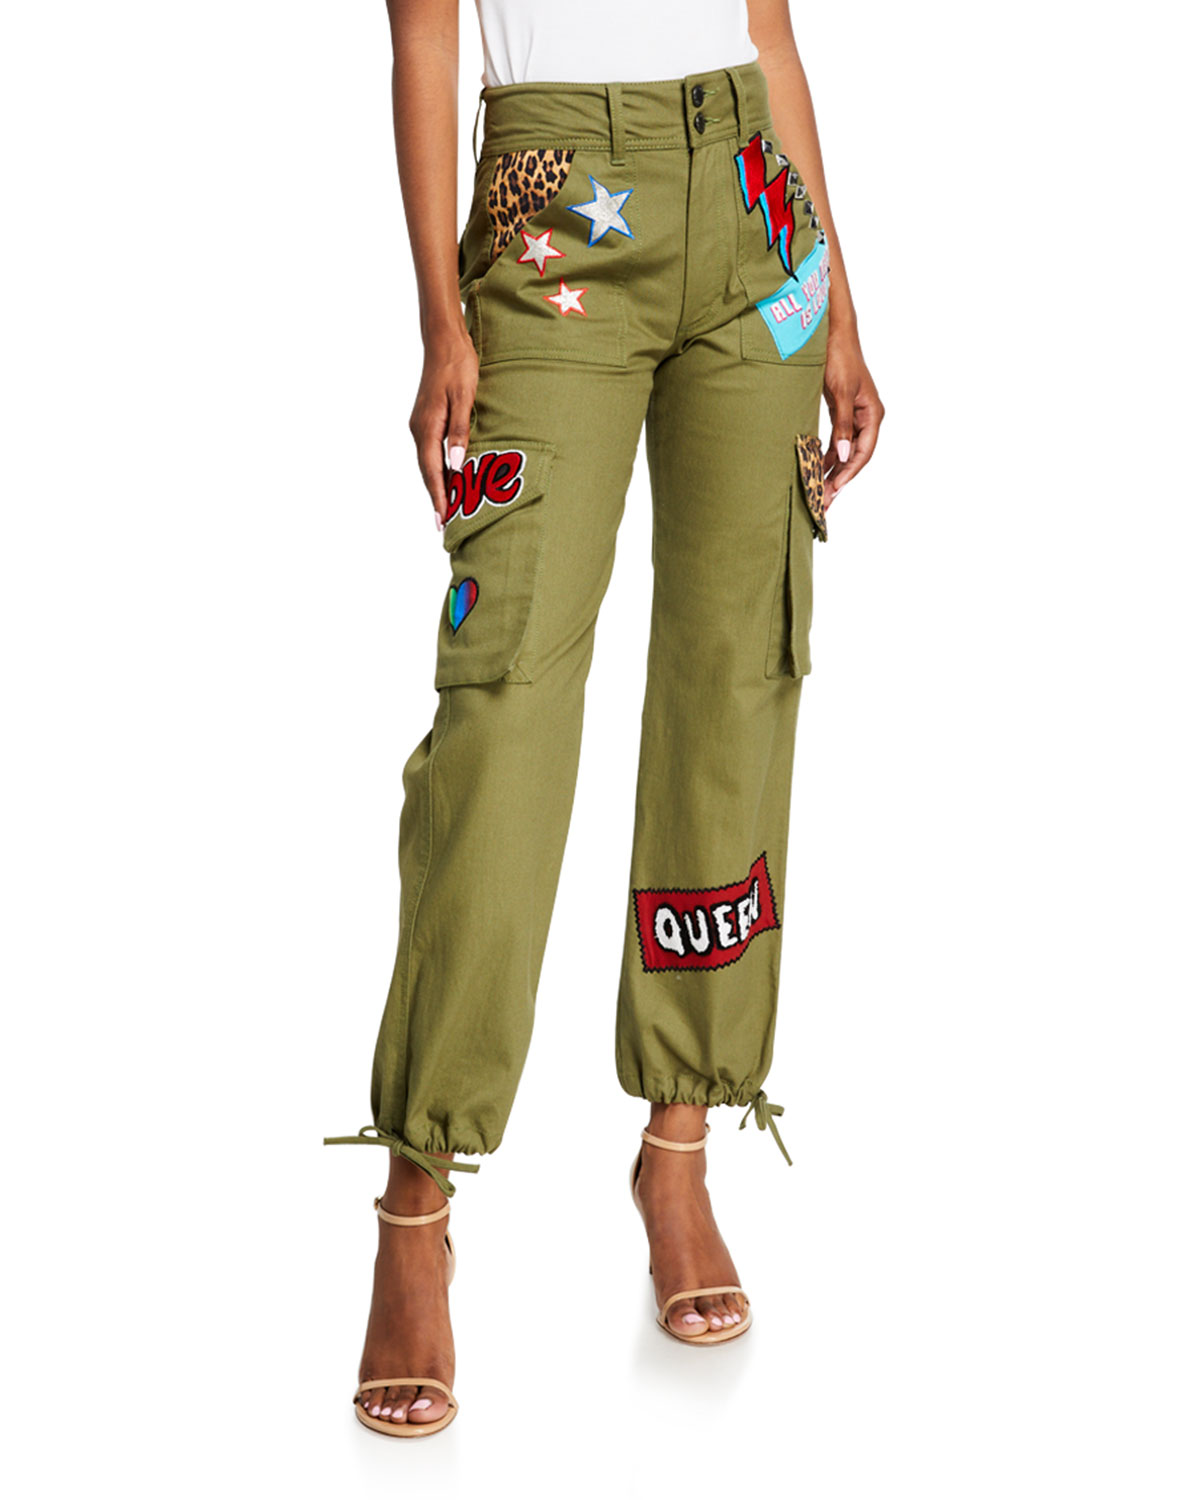 Alice + Olivia Jeans Flared pants HIGH-WAISTED CARGO PANTS W/ PATCHES